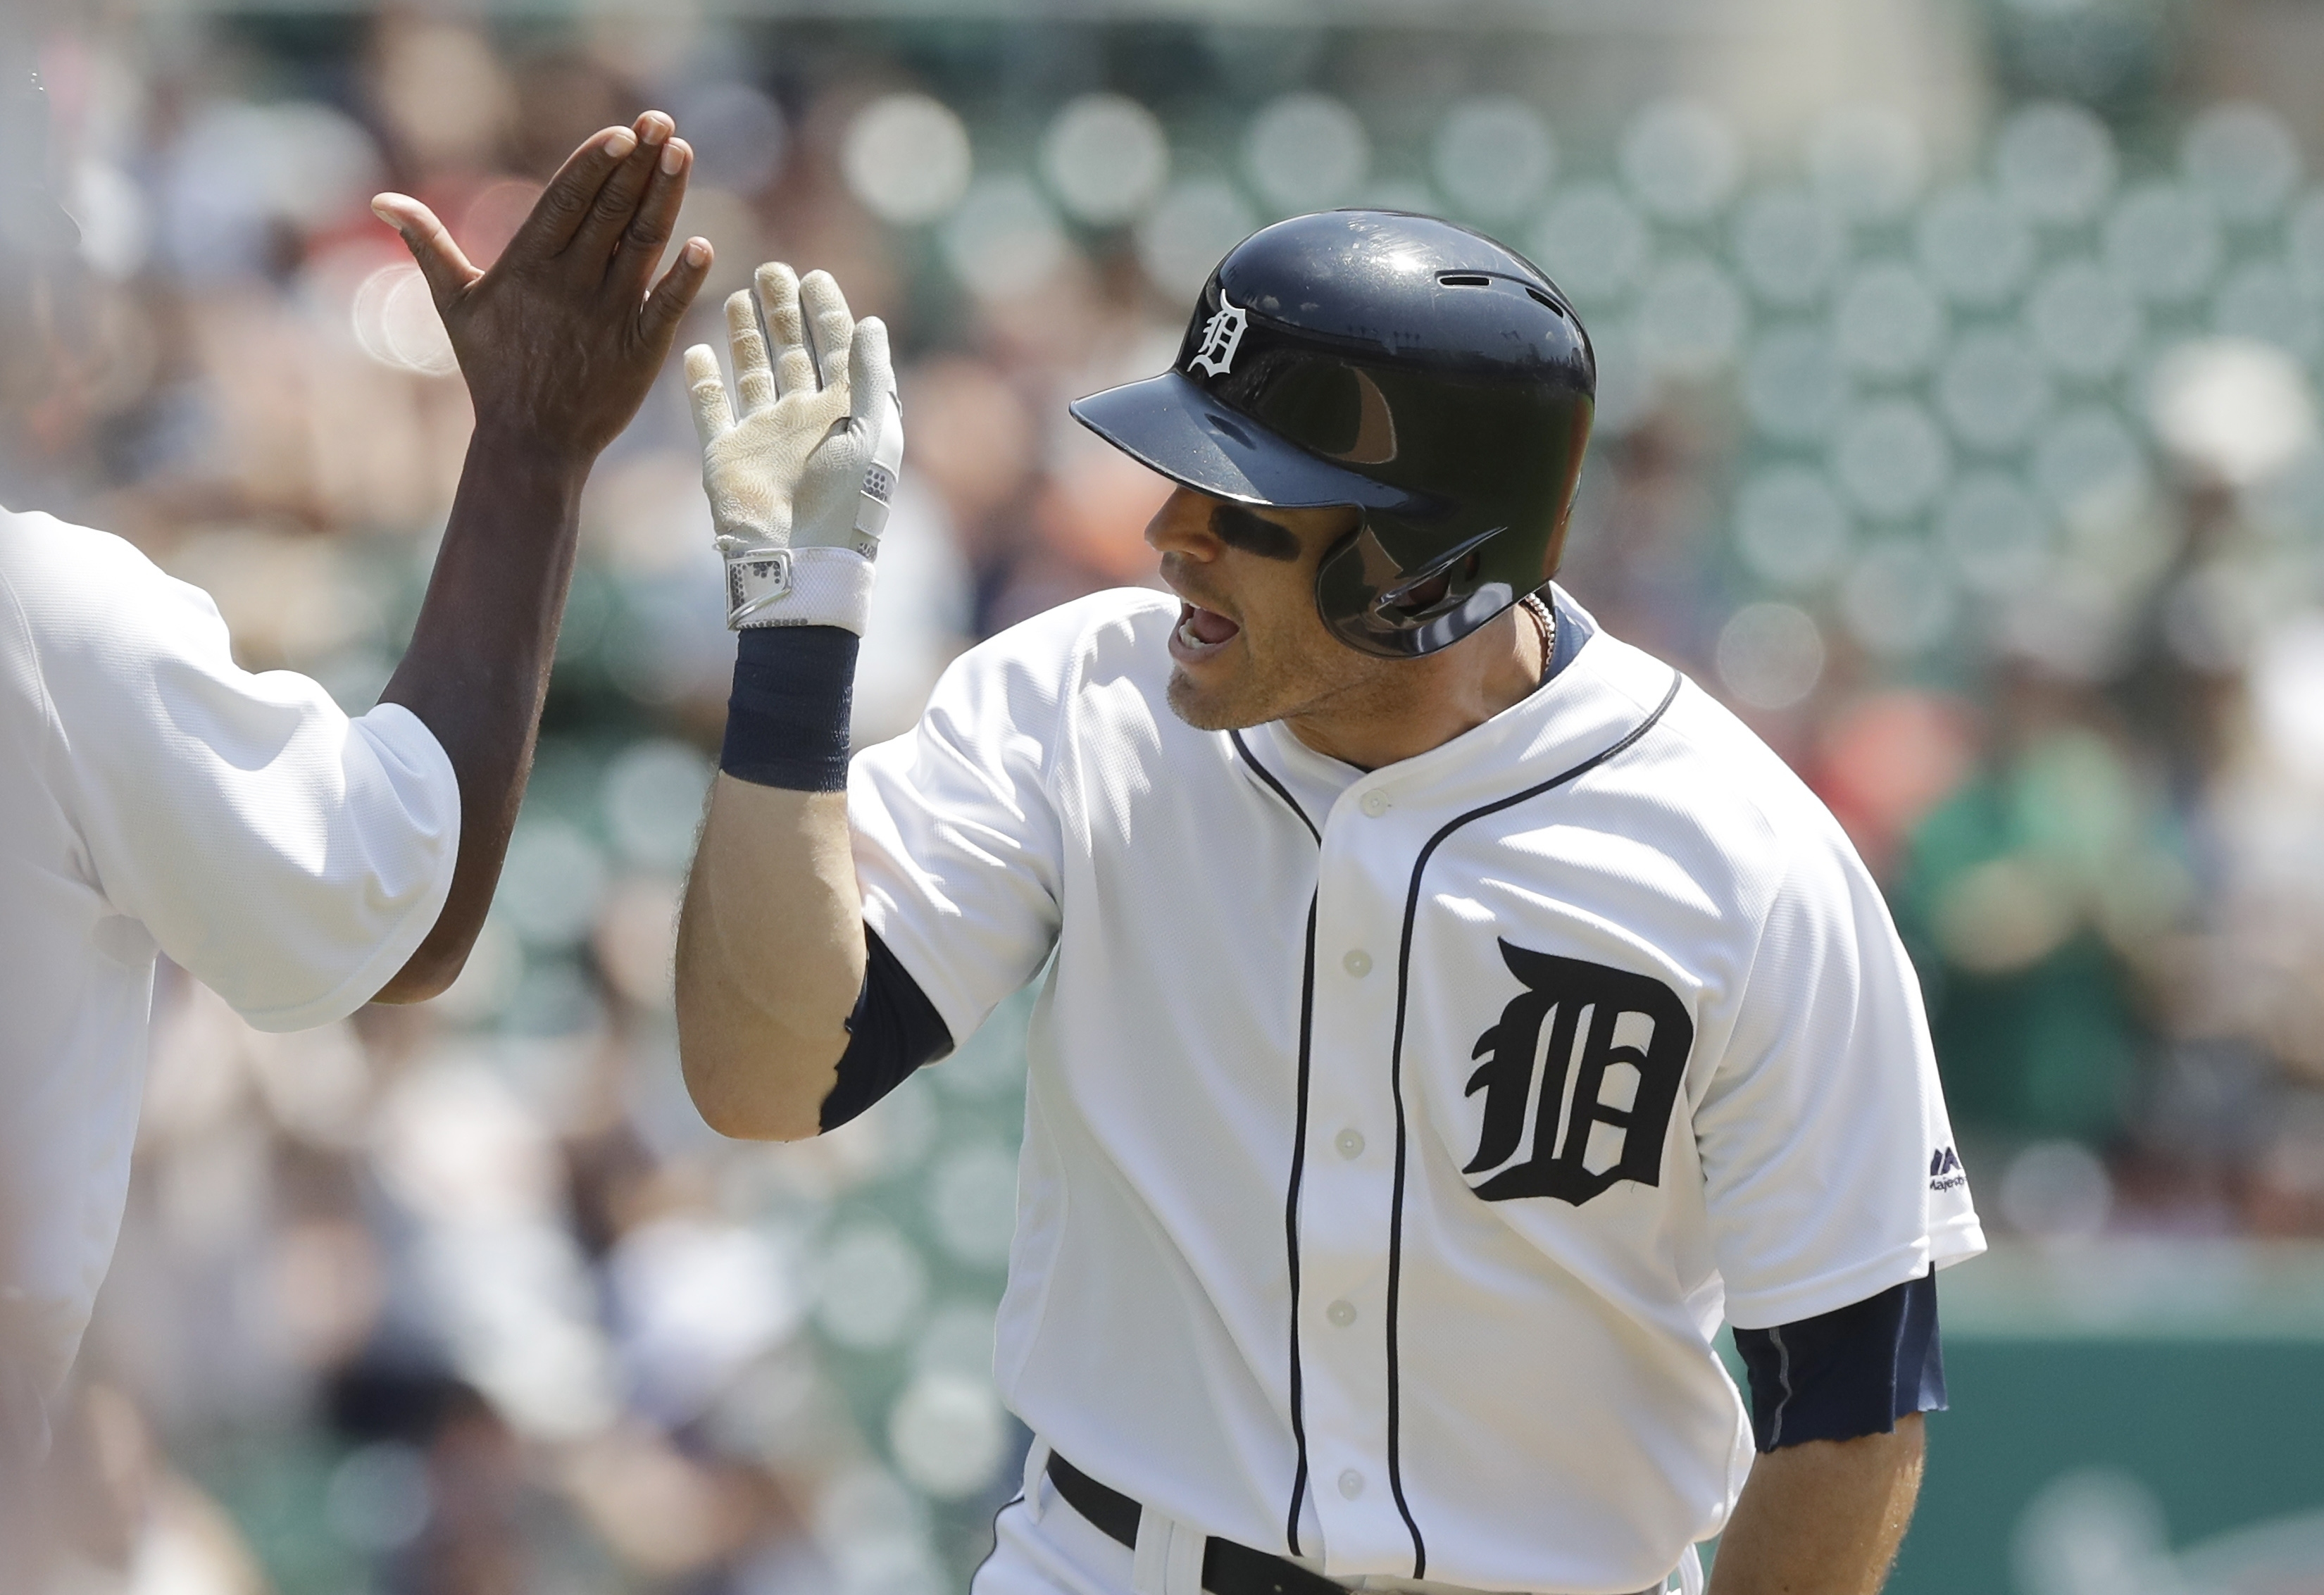 Detroit Tigers second baseman Ian Kinsler gets a high five from third base coach Dave Clark after a solo home run during the first inning of a baseball game against the Minnesota Twins, Wednesday, July 20, 2016 in Detroit. (AP Photo/Carlos Osorio)